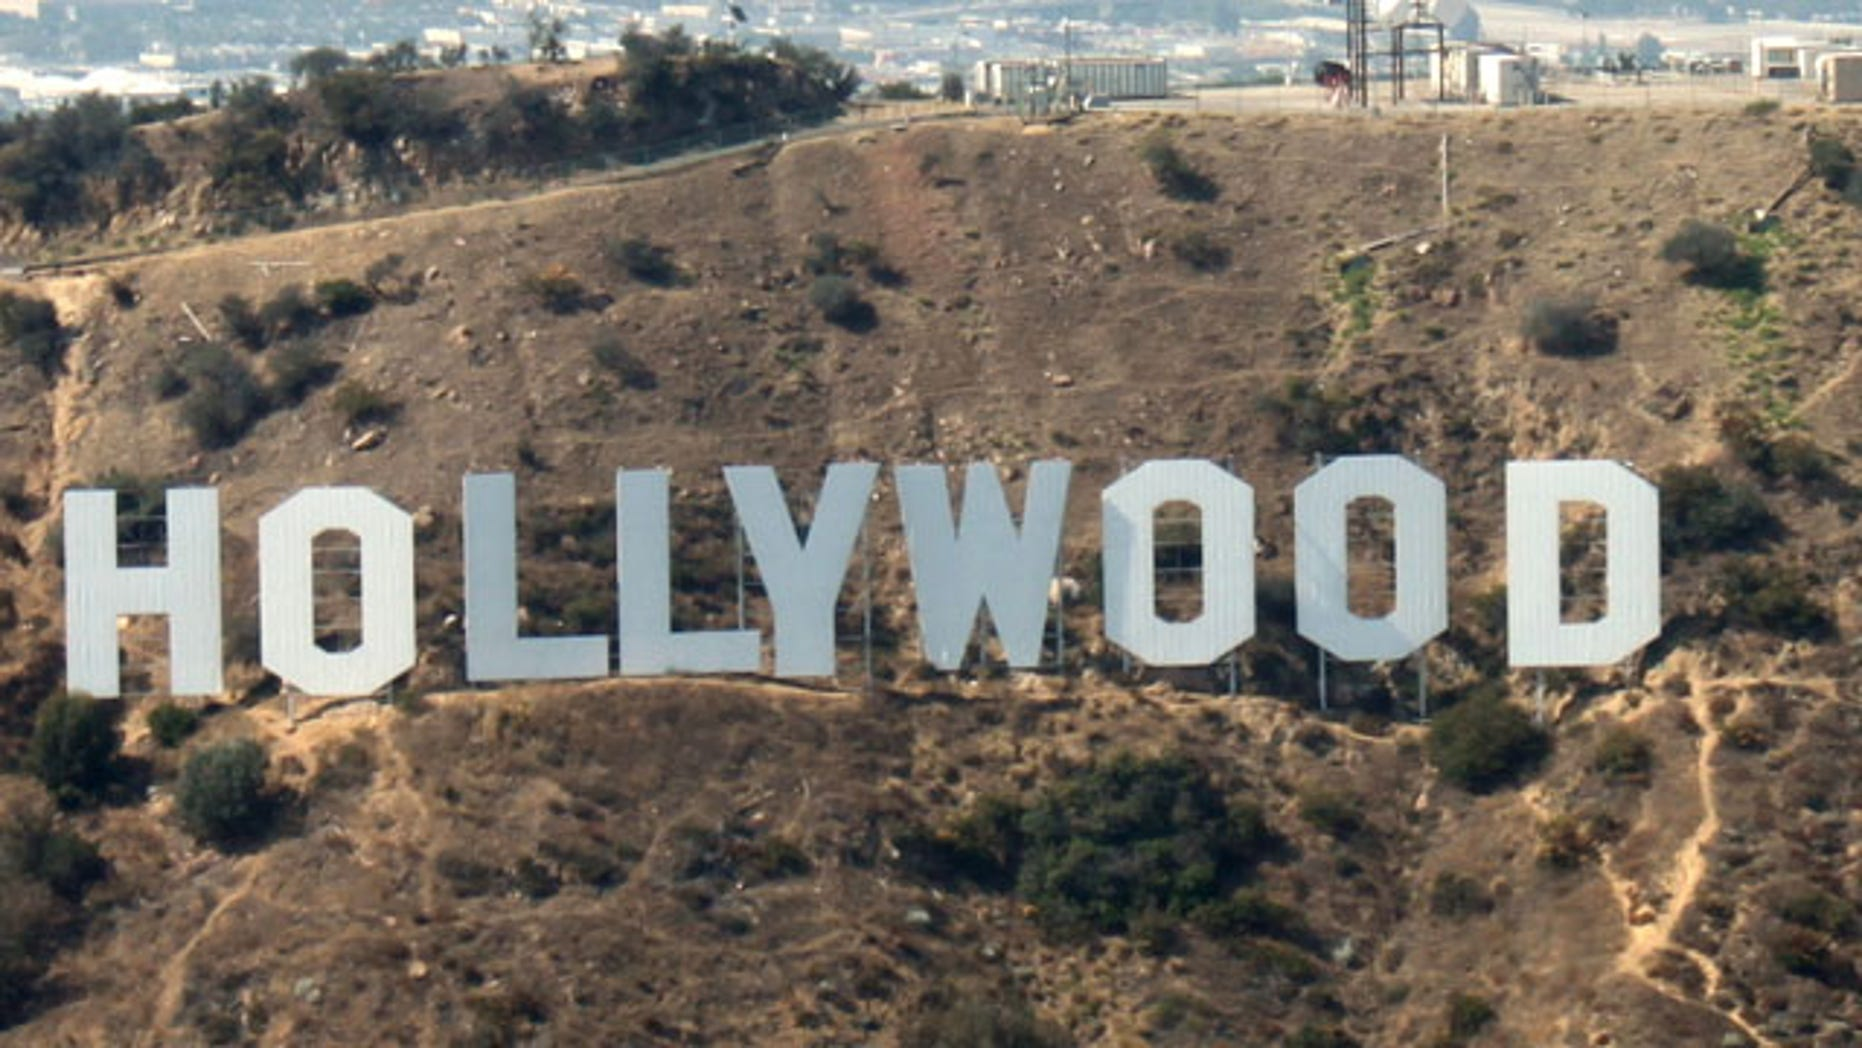 The Hollywood Sign as it appears today.